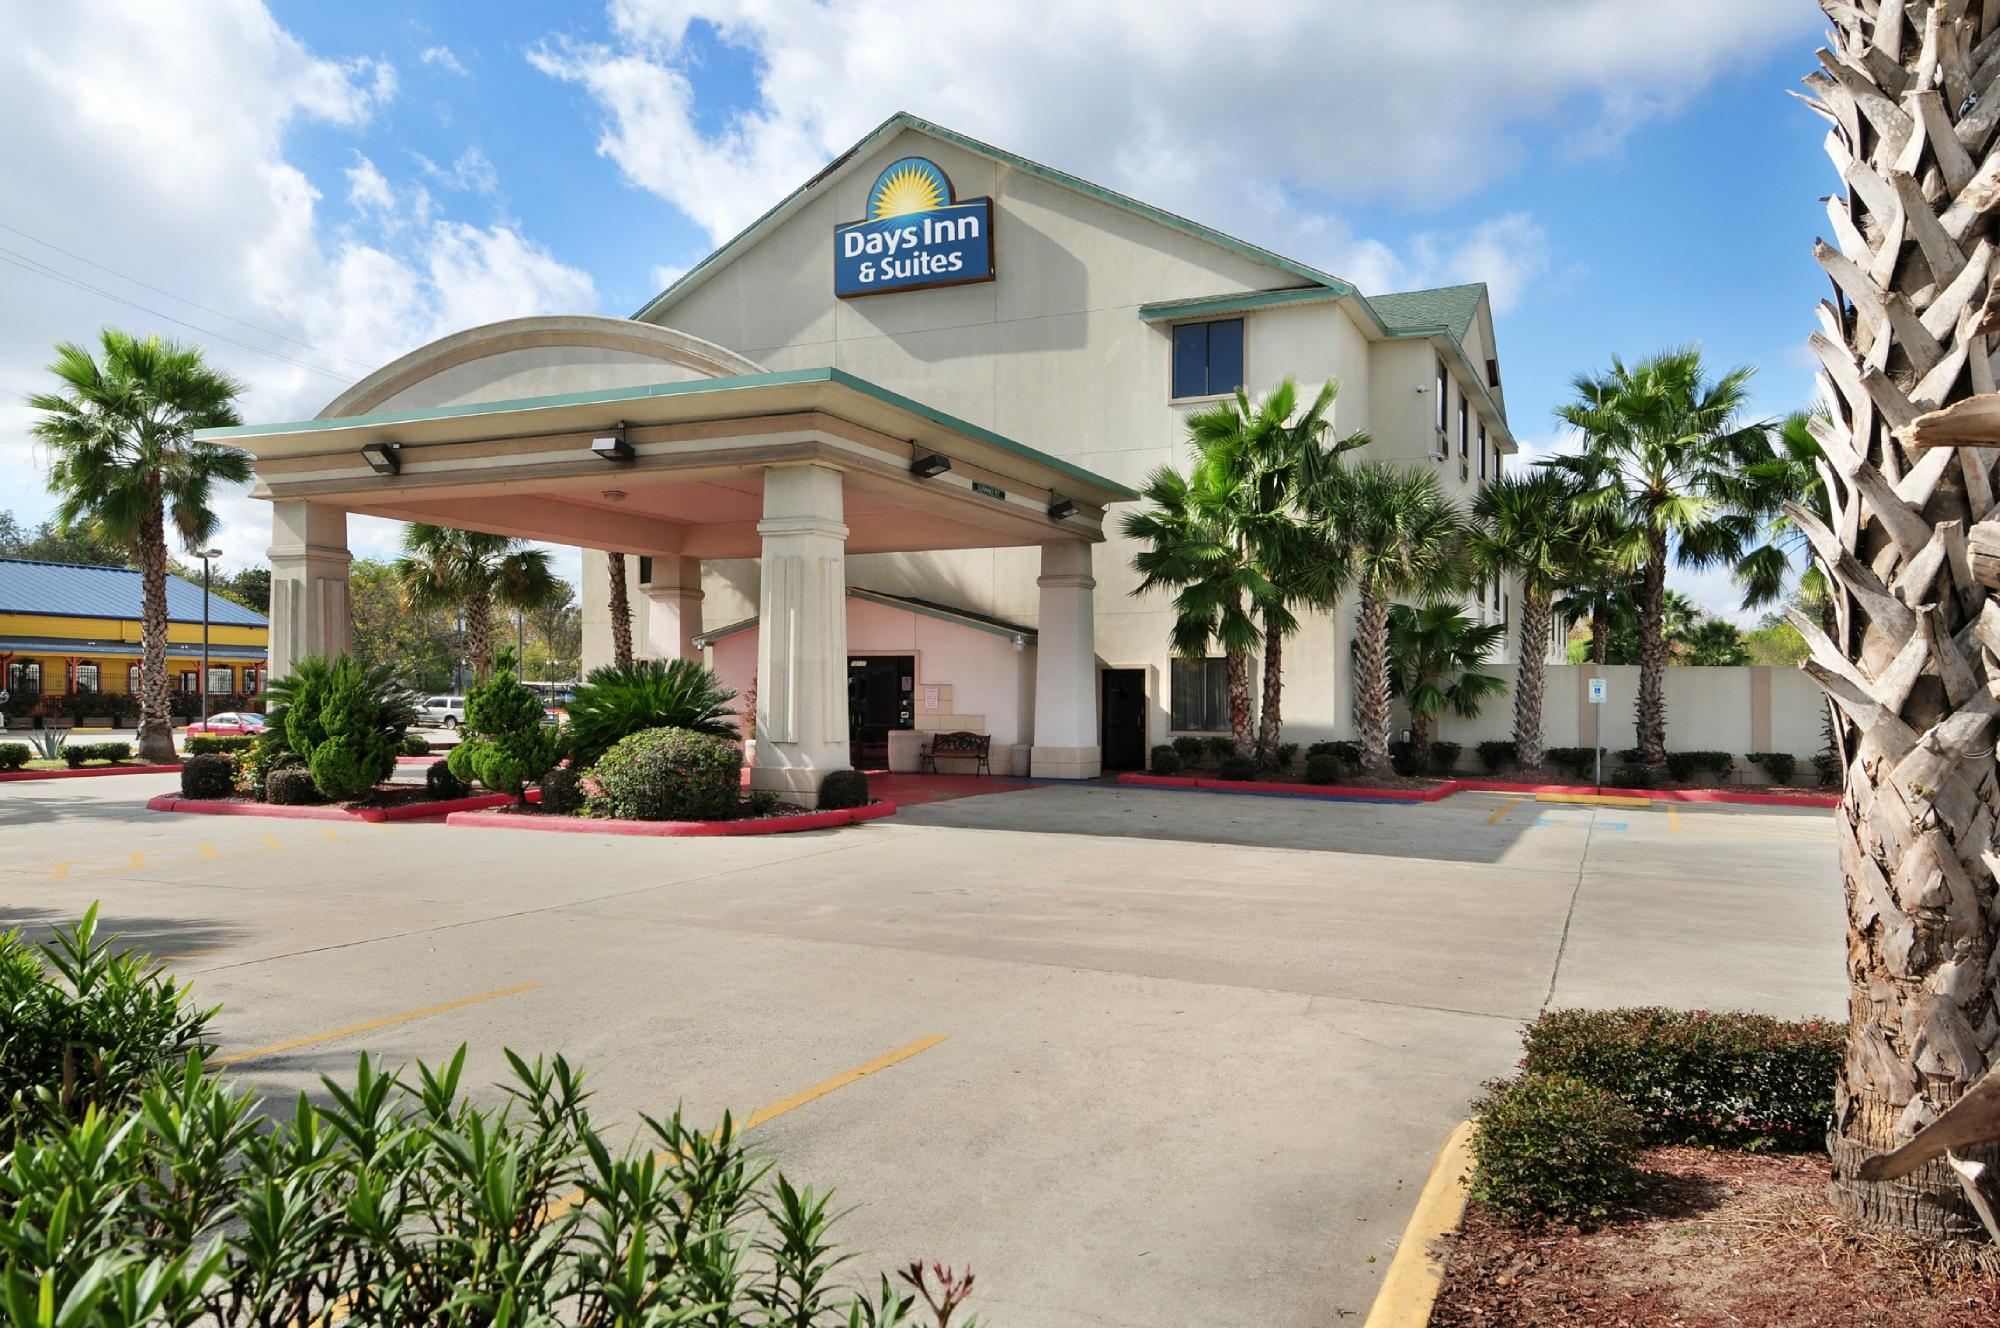 Days Inn And Suites Houston IAH Airport